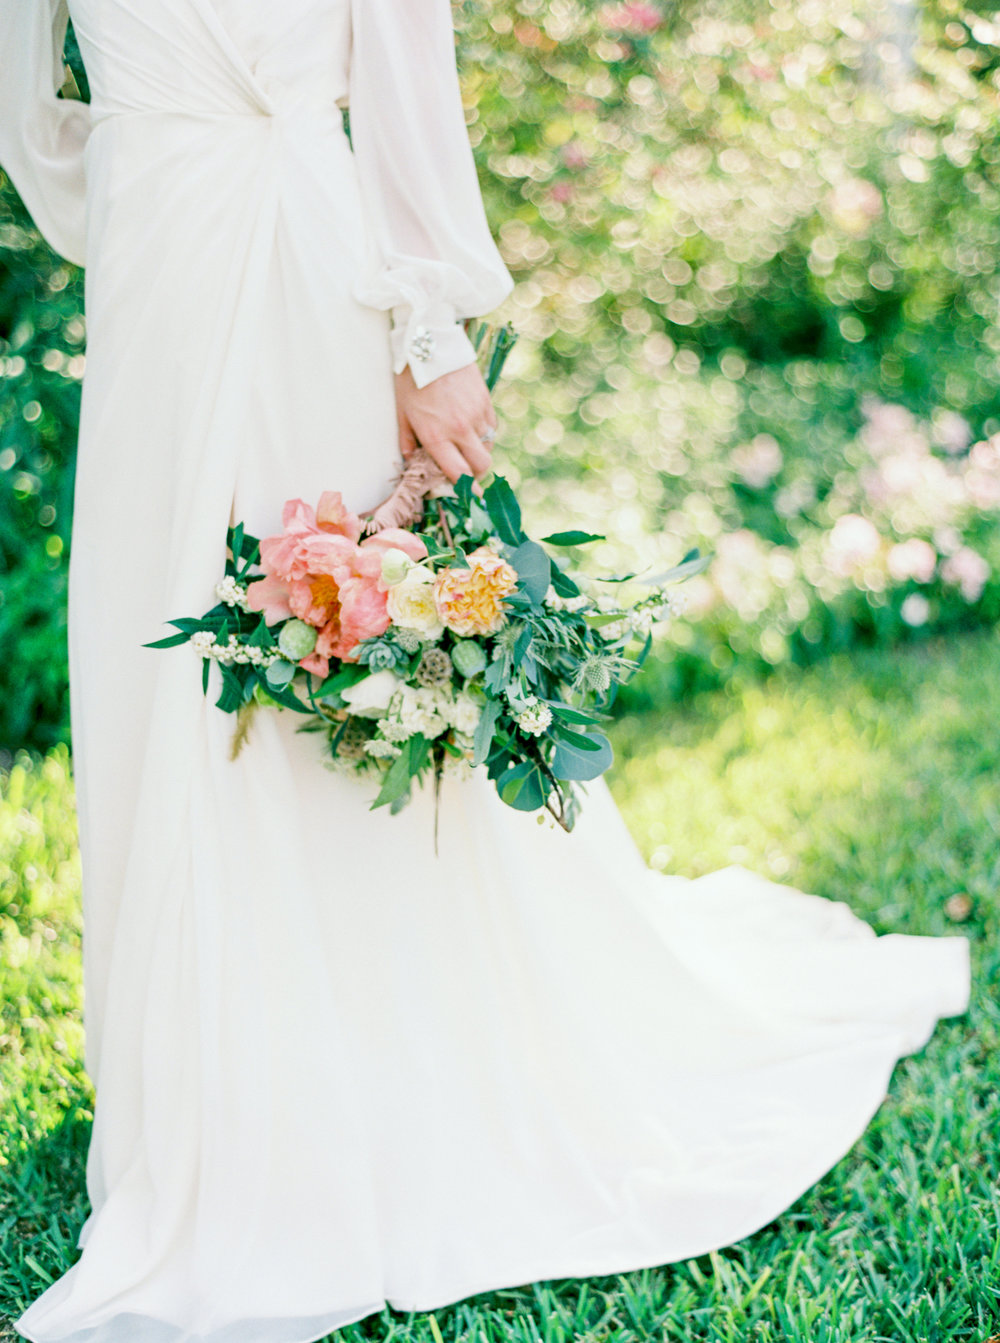 Shalyn-Nelson-photography-ivory-and-beau-bridal-boutique-ivory-and-beau-wedding-planning-barr-mansion-blush-by-hayley-paige-vienna-sweet-magnolia-floral-austin-texas-wedding-savannah-wedding-savannah-bridal-boutique-savannah-weddings-13.jpg